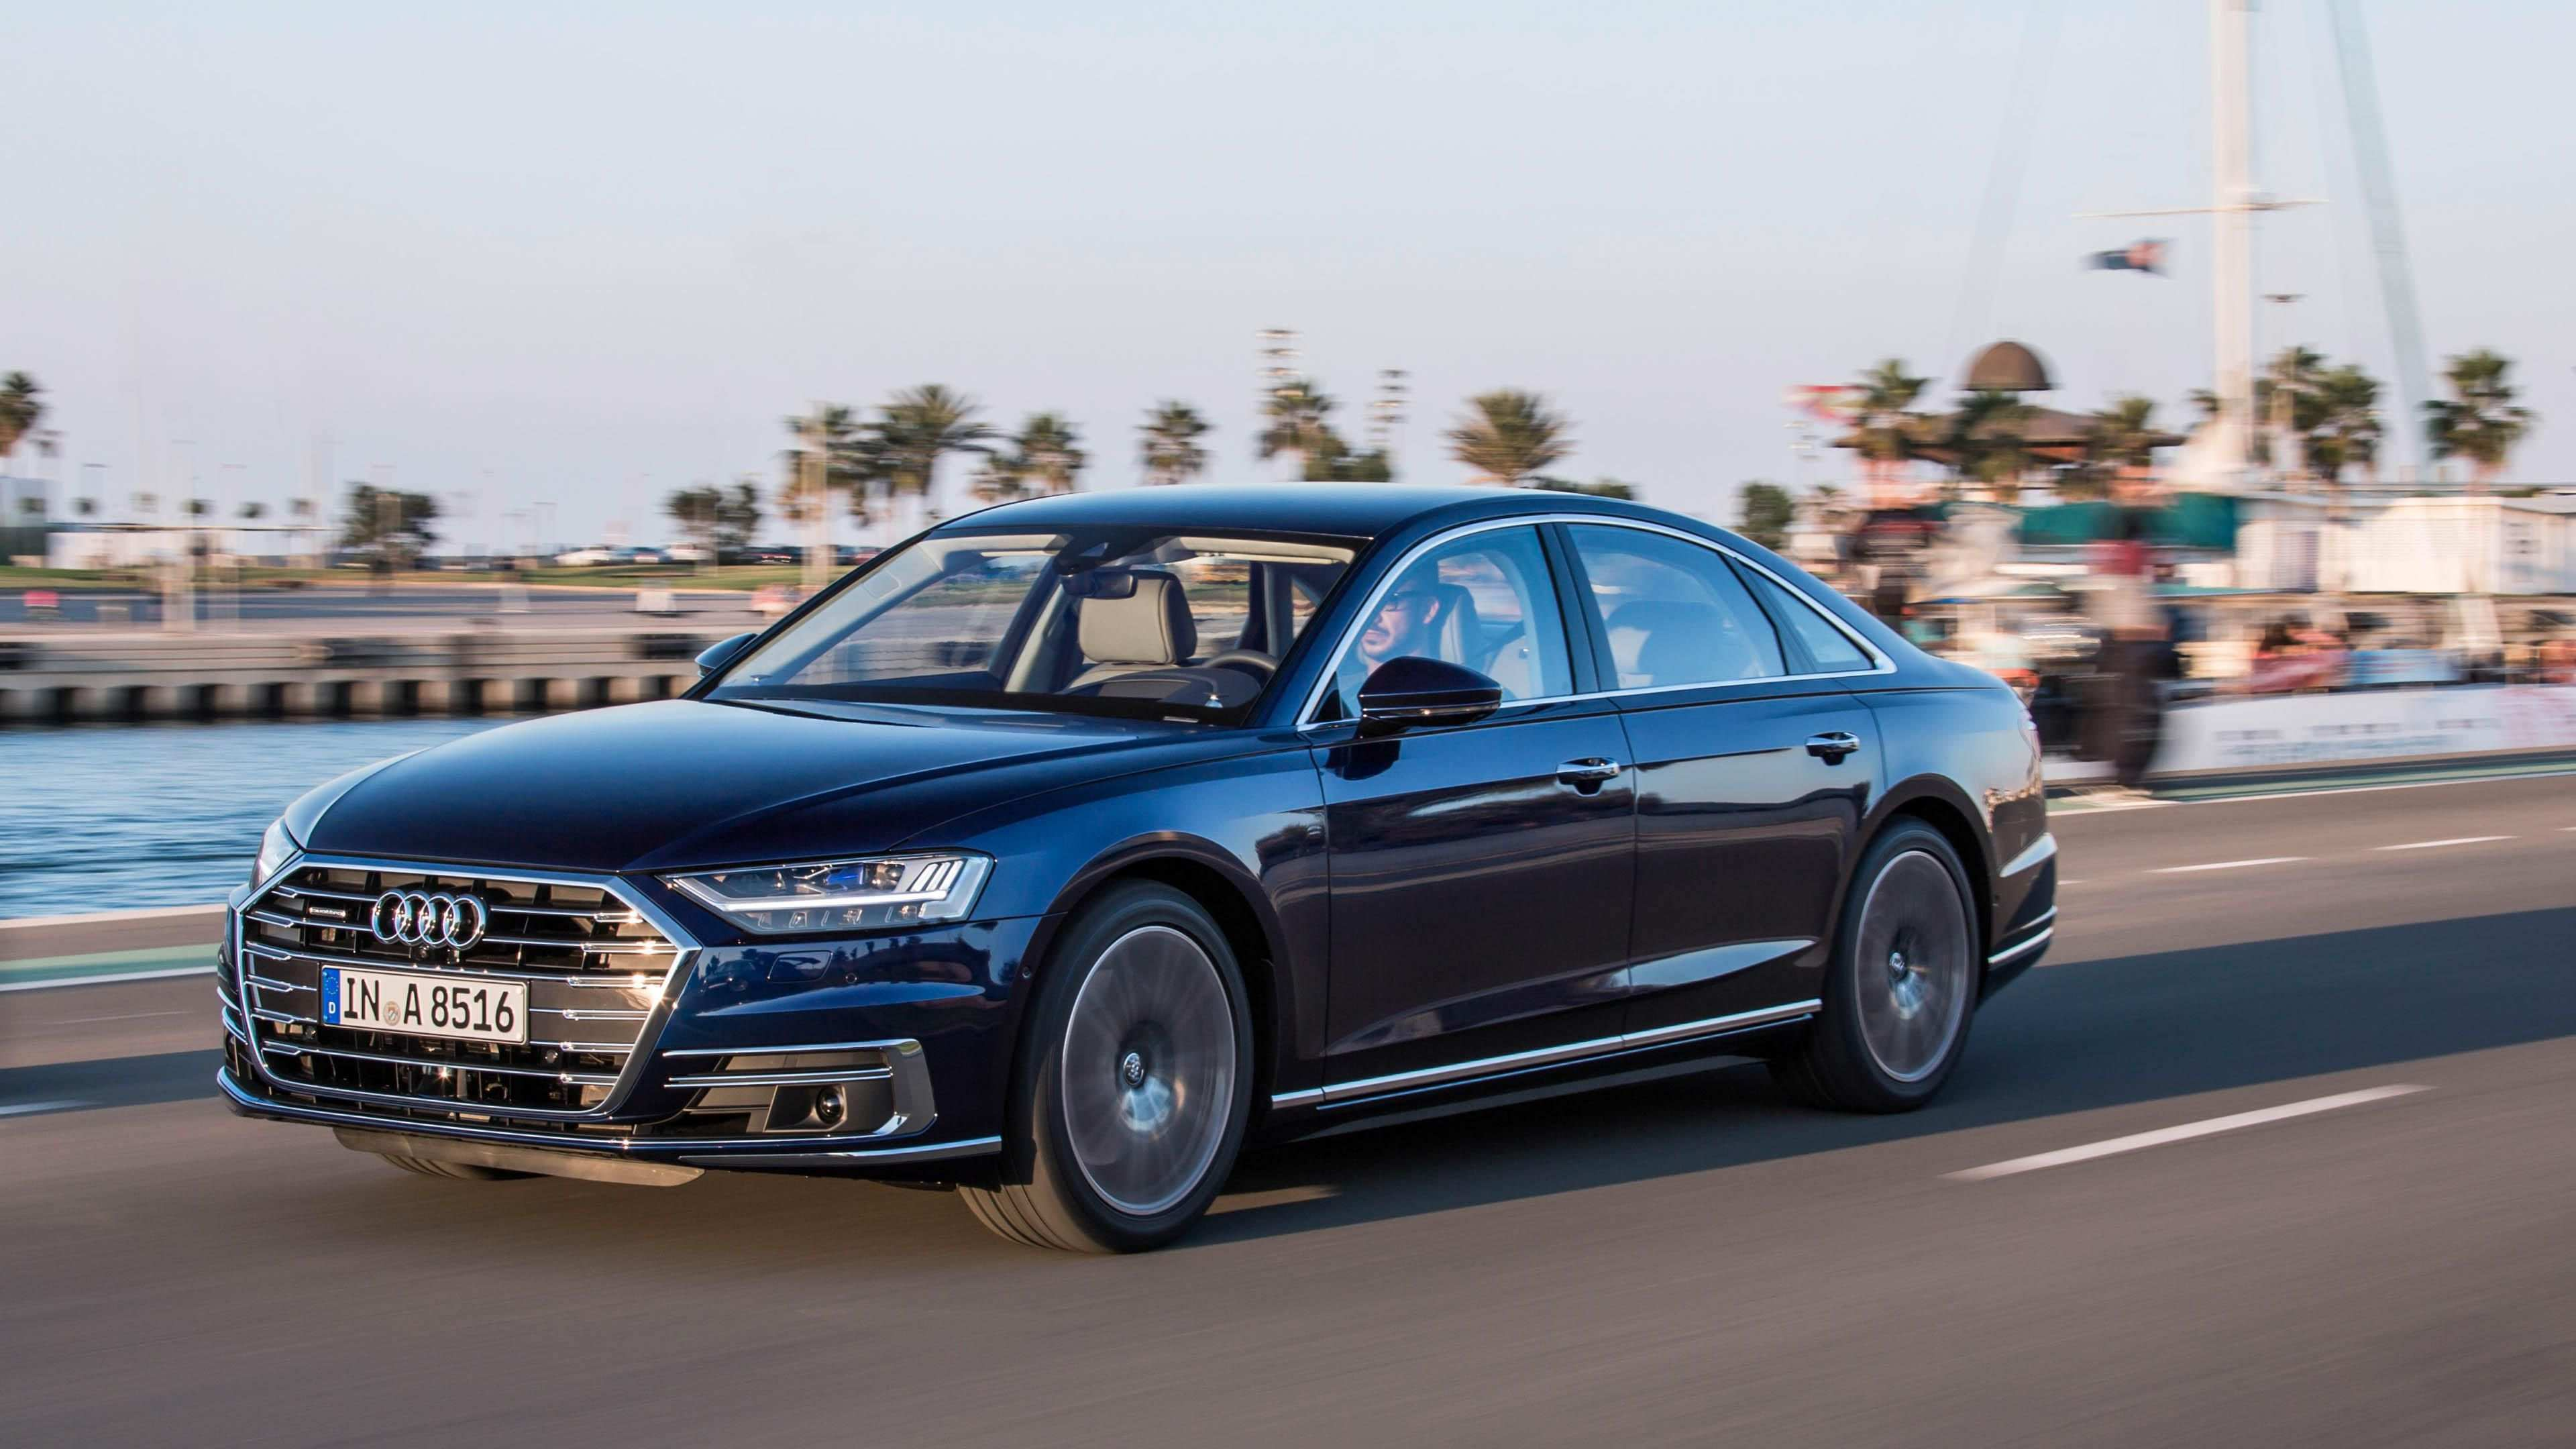 94 All New 2019 Audi S8 Plus Price and Review by 2019 Audi S8 Plus